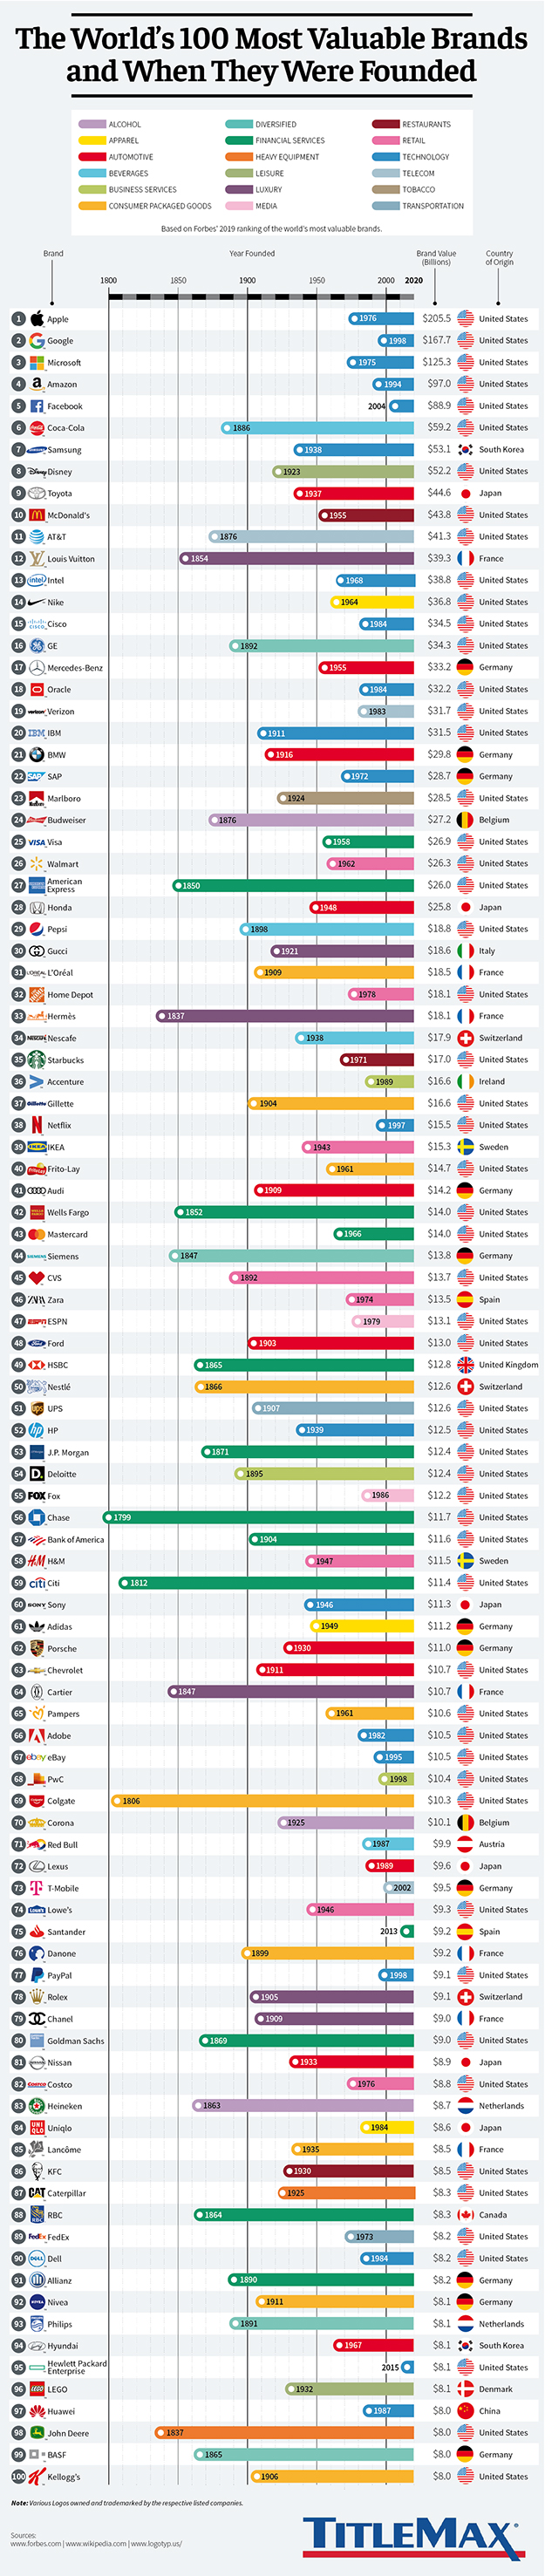 Infographic for The World's 100 Most Valuable Brands and When They Were Founded